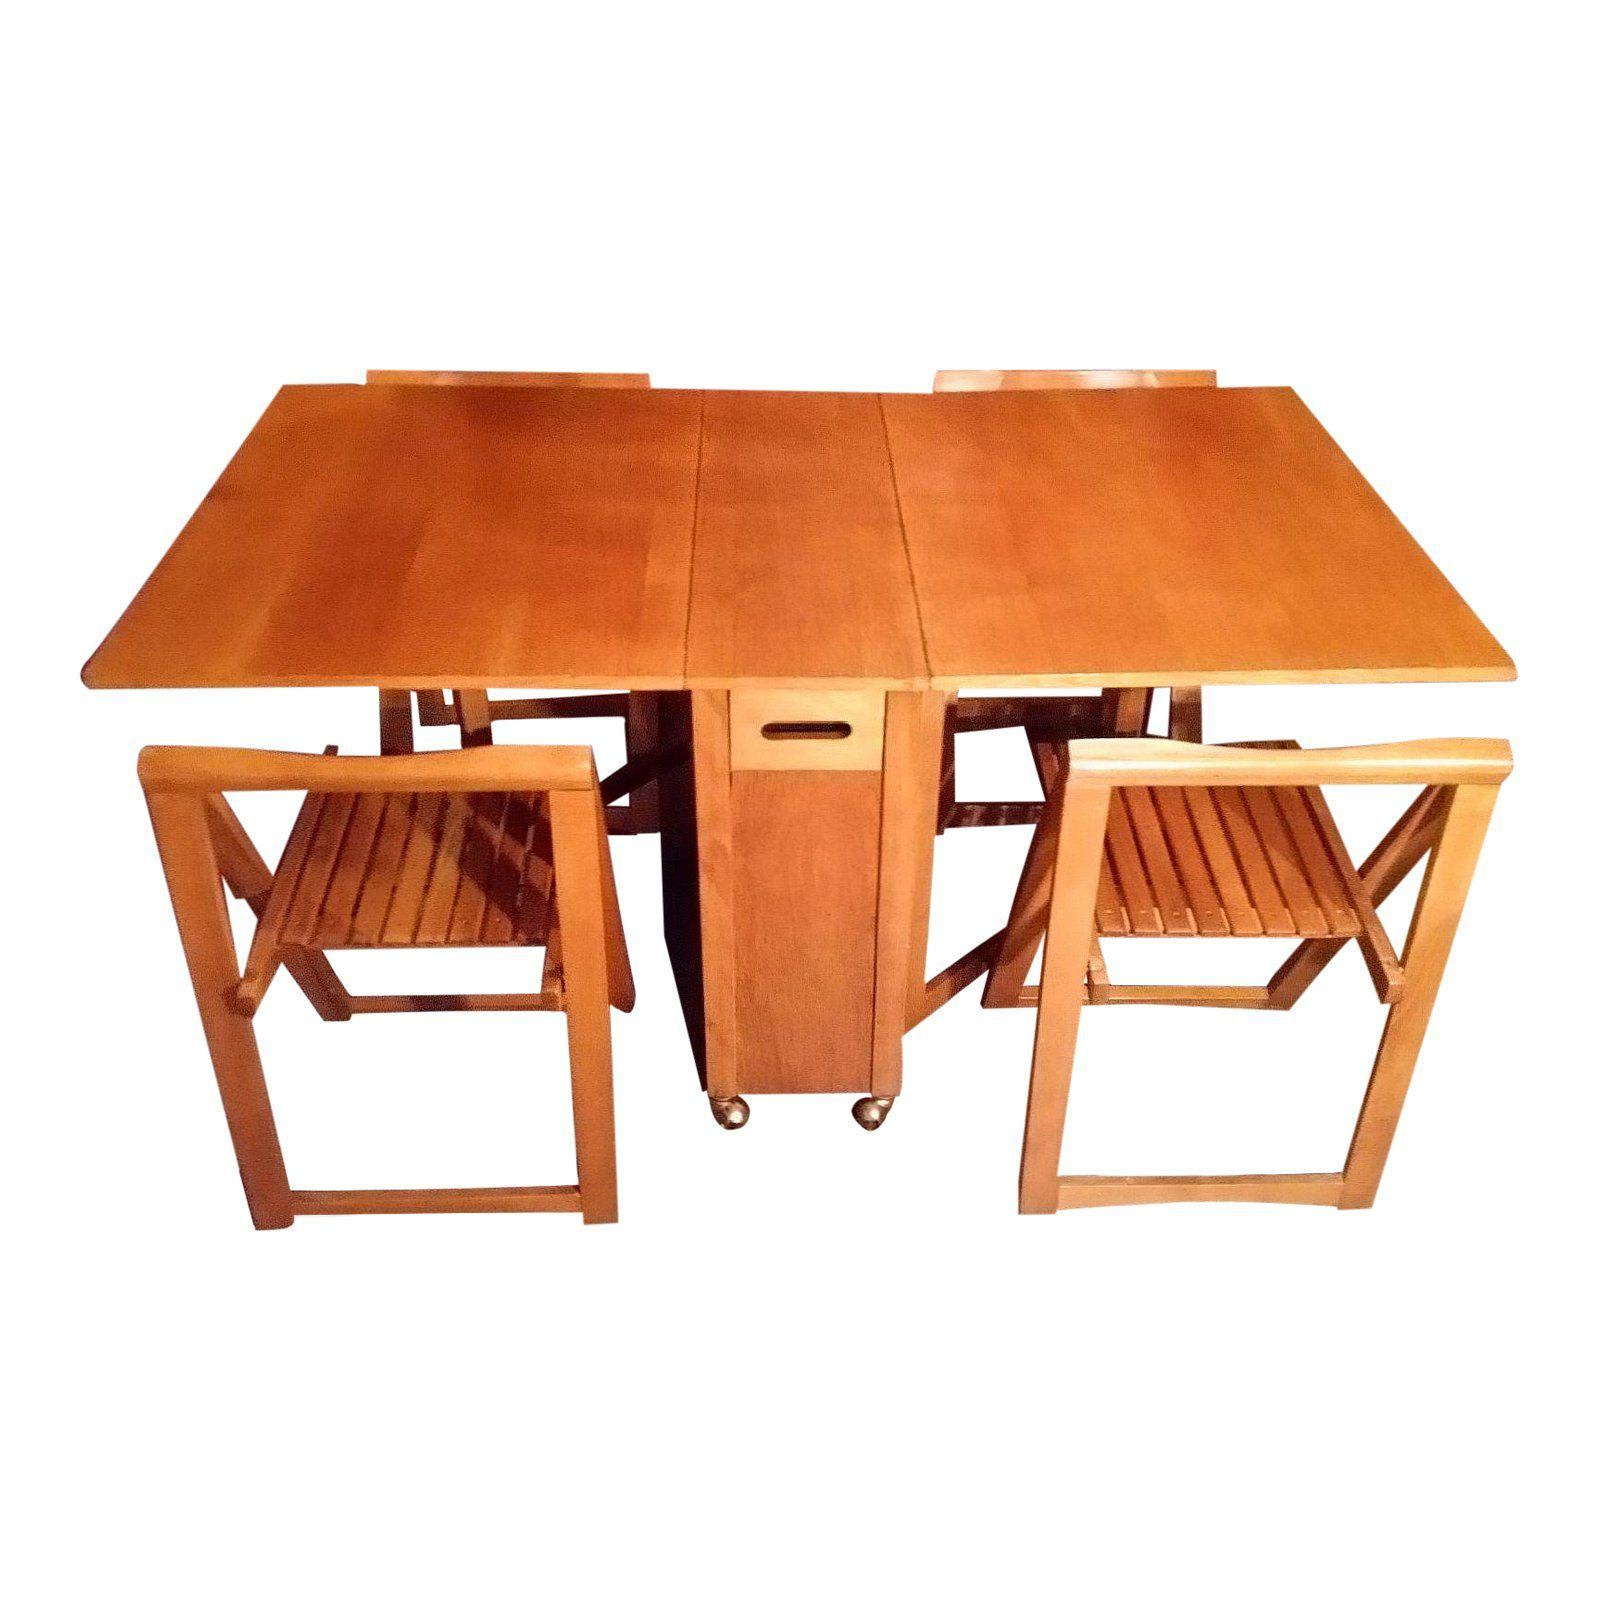 Mid Century Drop Leaf Gateleg Dining Table With Stow Away Folding Chairs Space Saver Chairish Dining Table Chairs Dining Table Contemporary Dining Chairs Drop leaf table and chairs